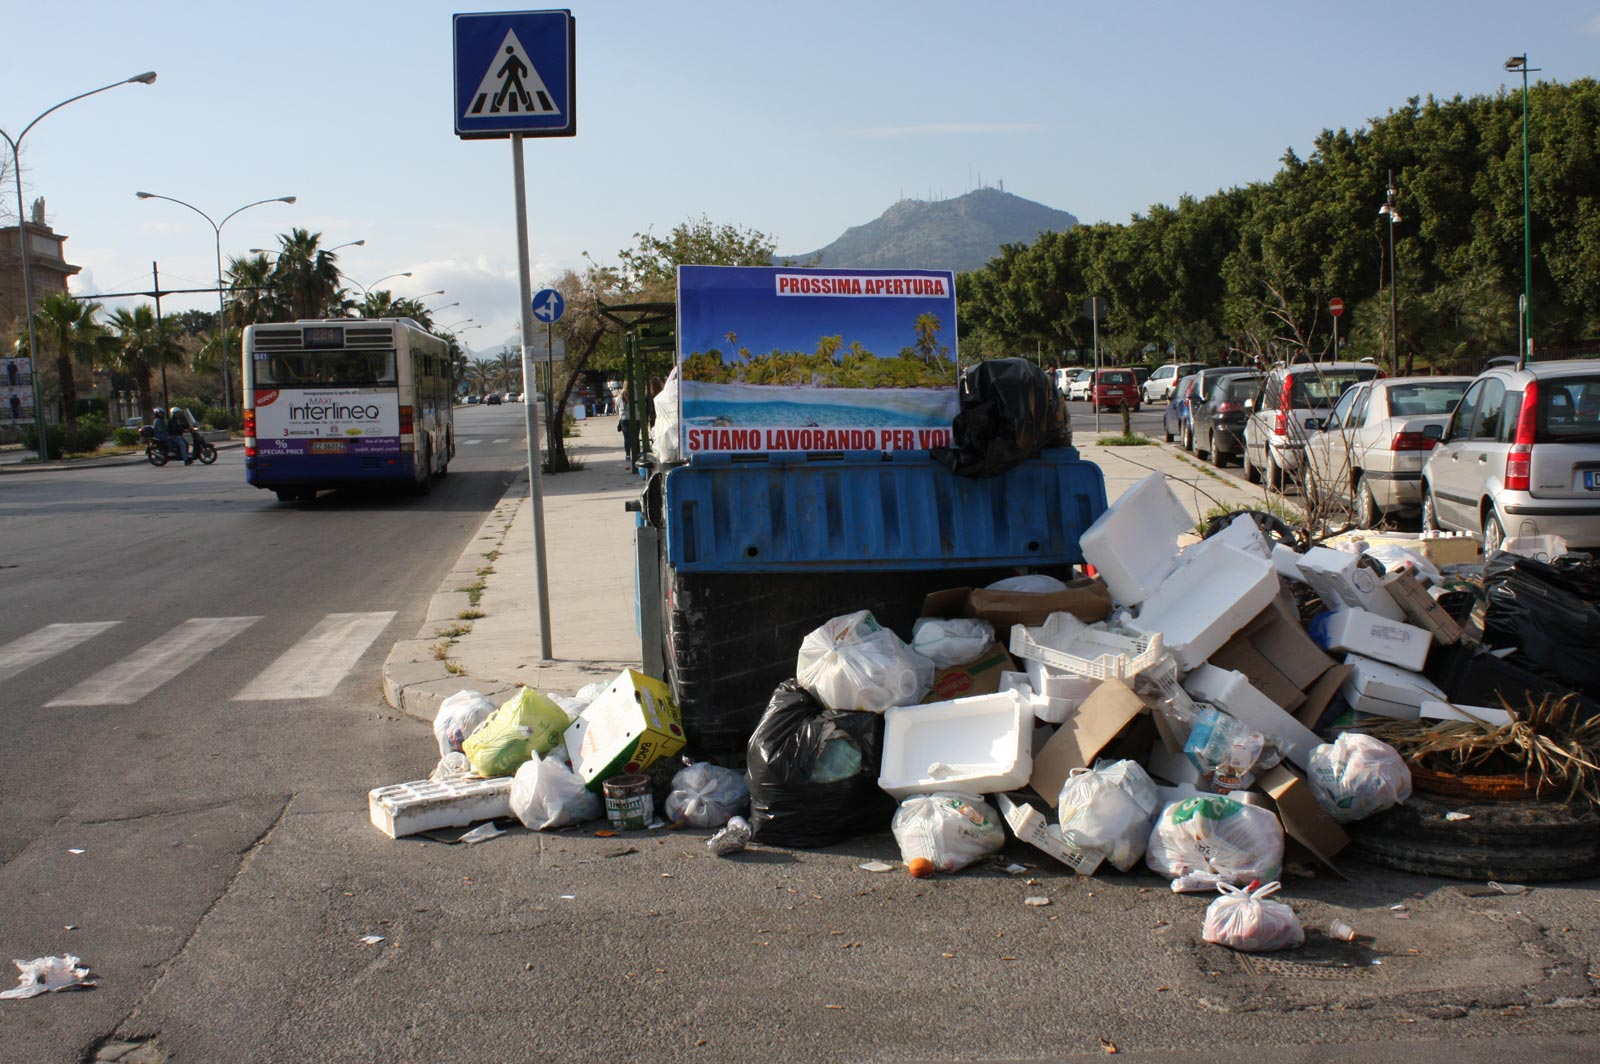 Let's Keep Clean The Street & Save Palermo